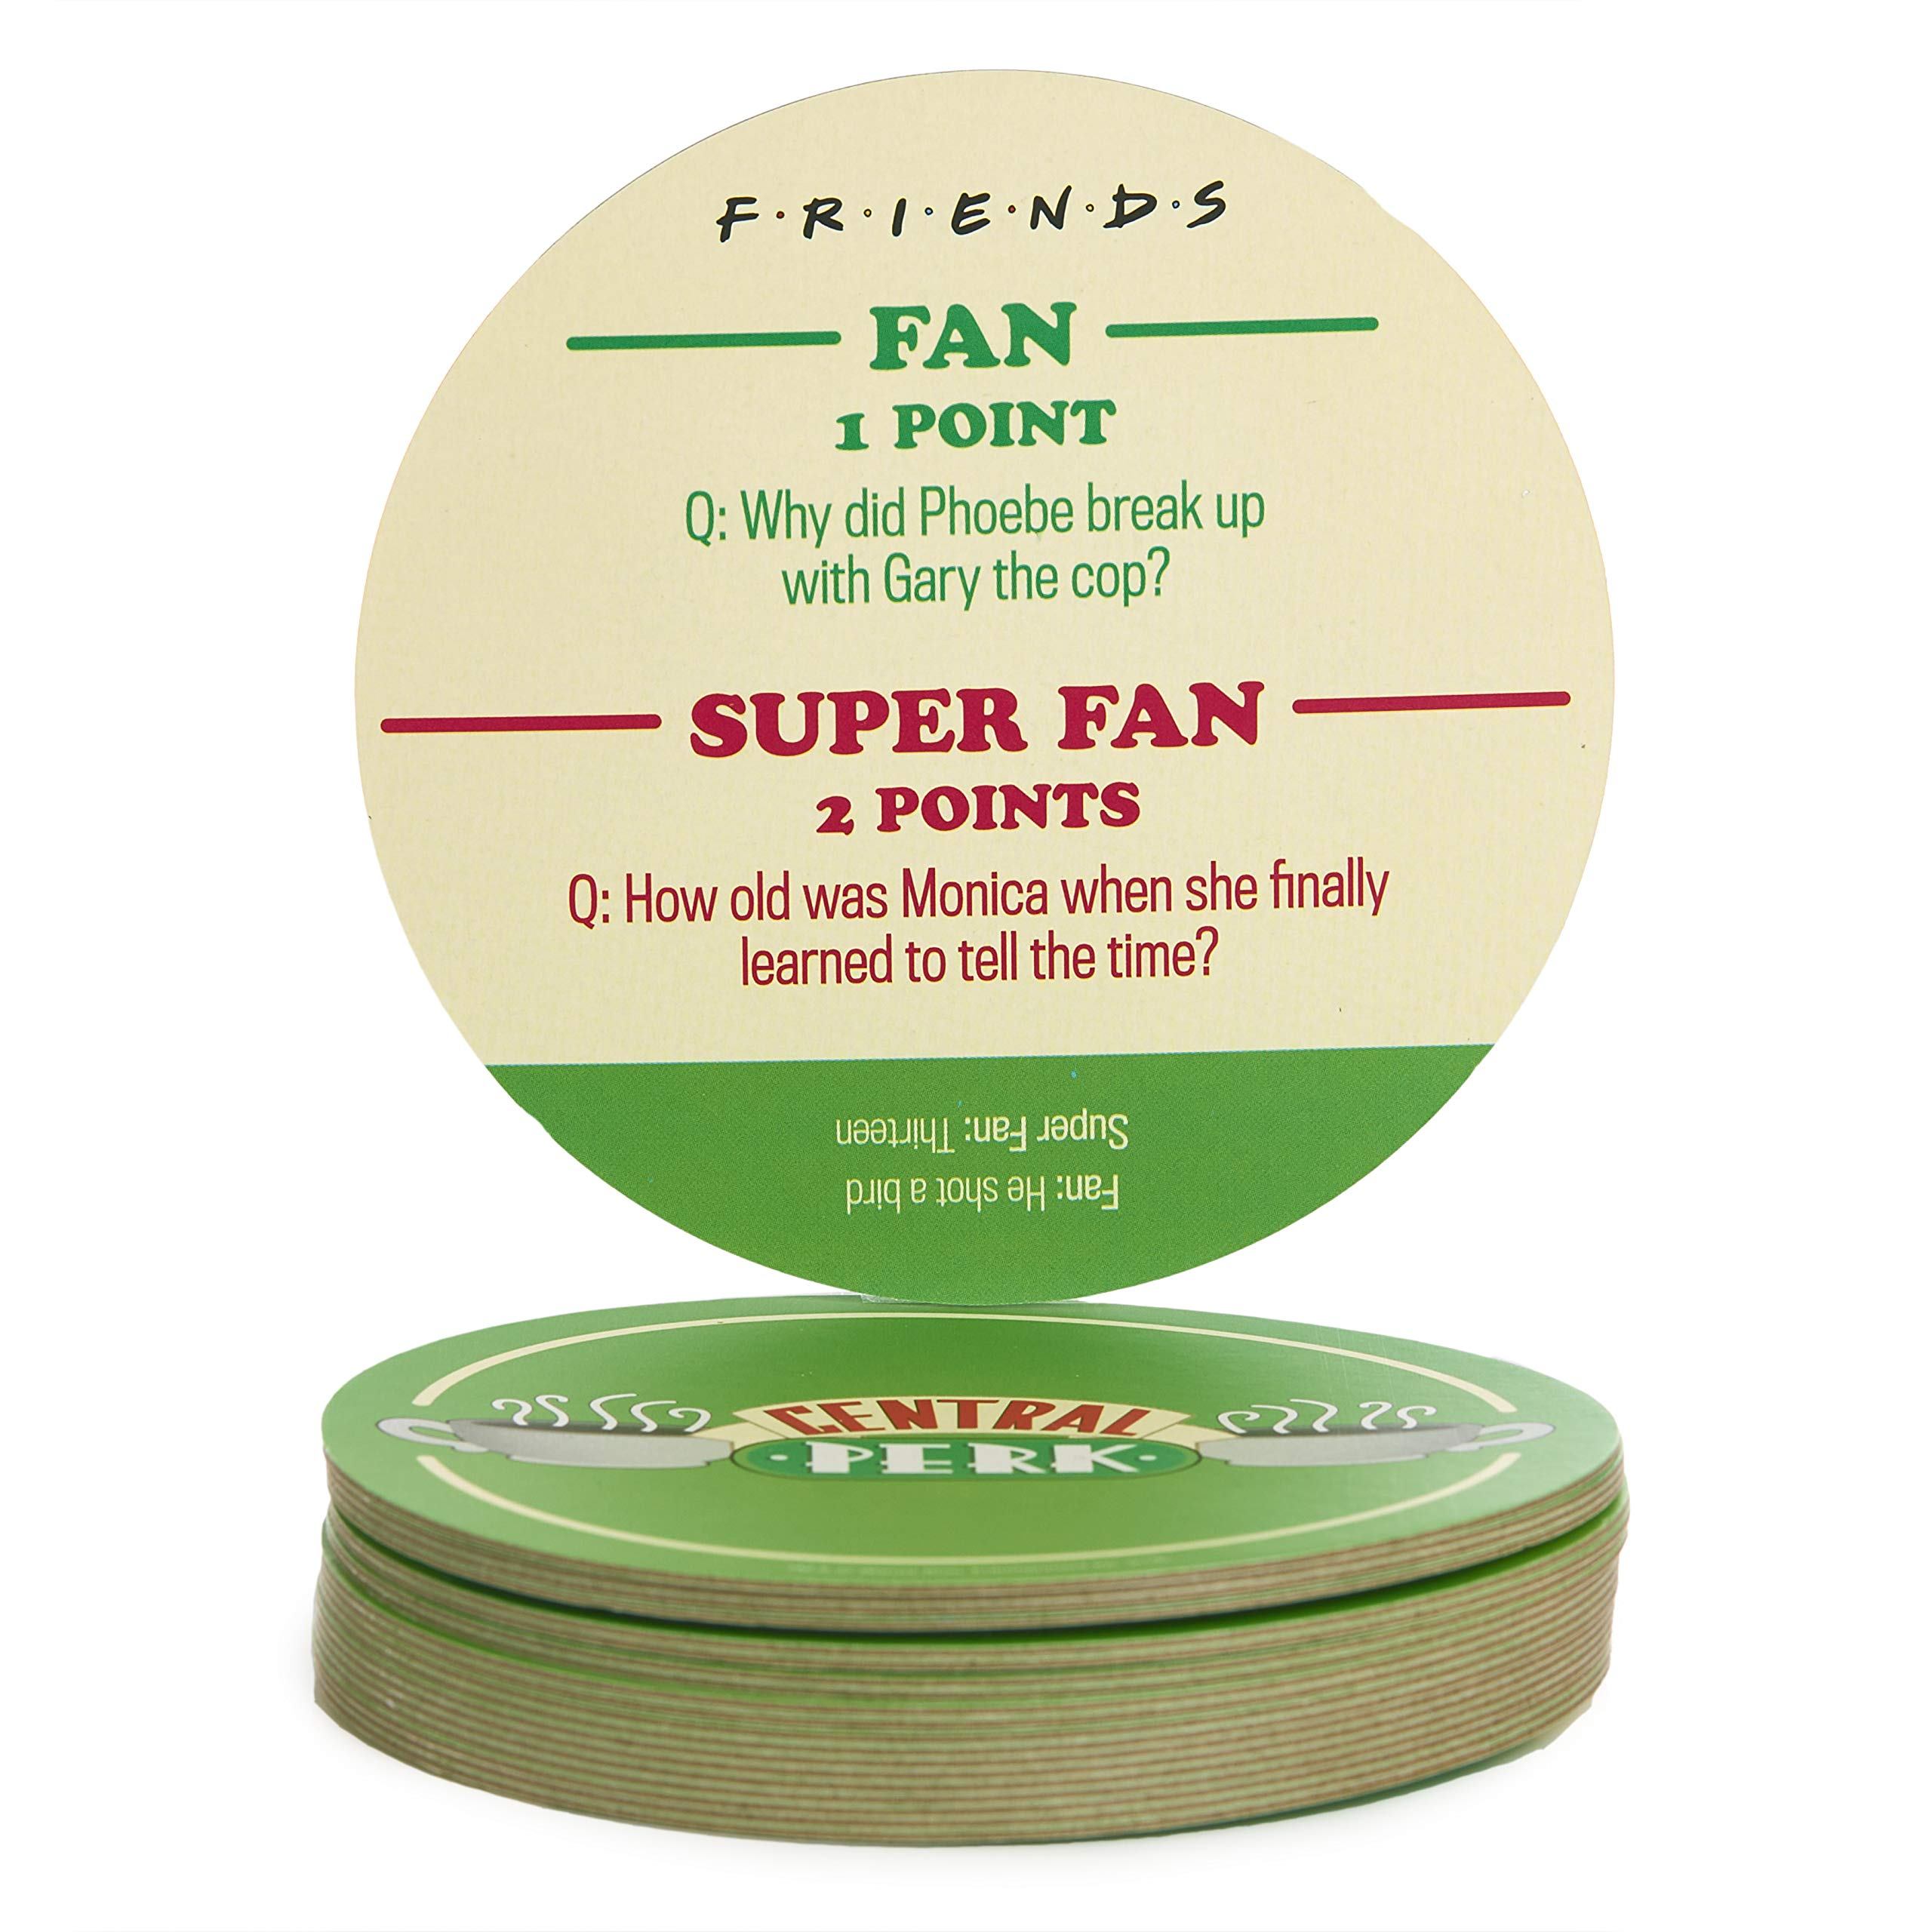 Paladone PP5713FR Friends TV Show Trivia, 20 Central Perk Drink Coasters with 40 Questions, Cardboard